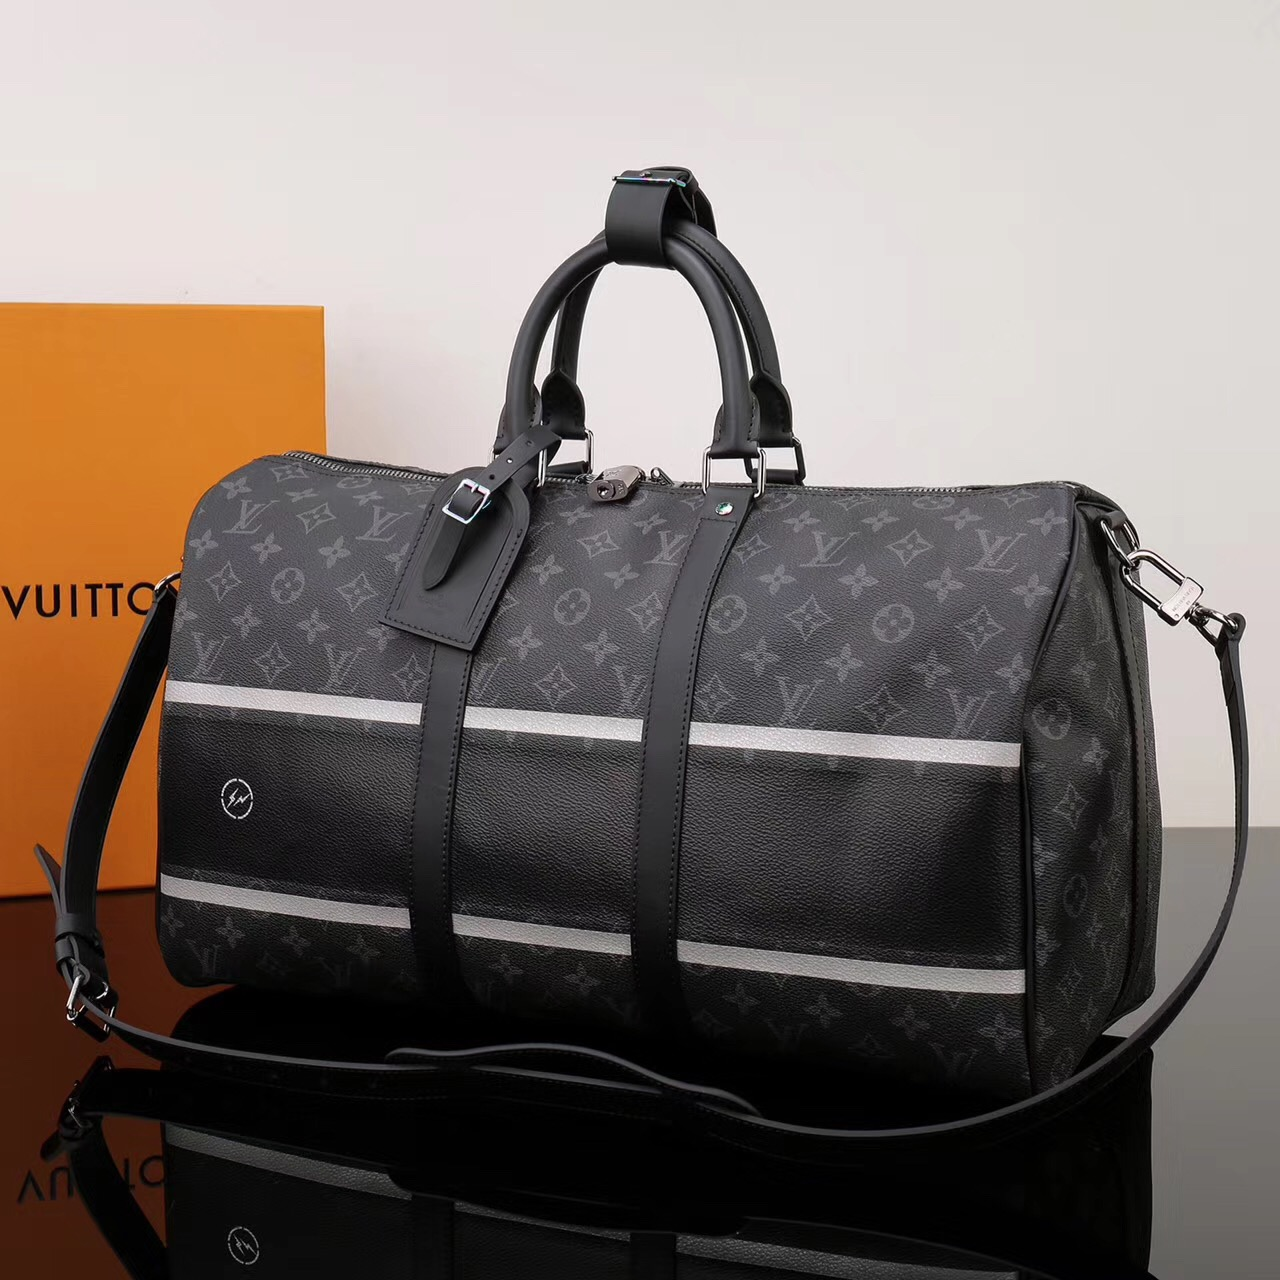 b98c268d72df ... Men LV Louis Vuitton Keepall 45 Handbags Travelling M43413 Monogram bags  Black ...